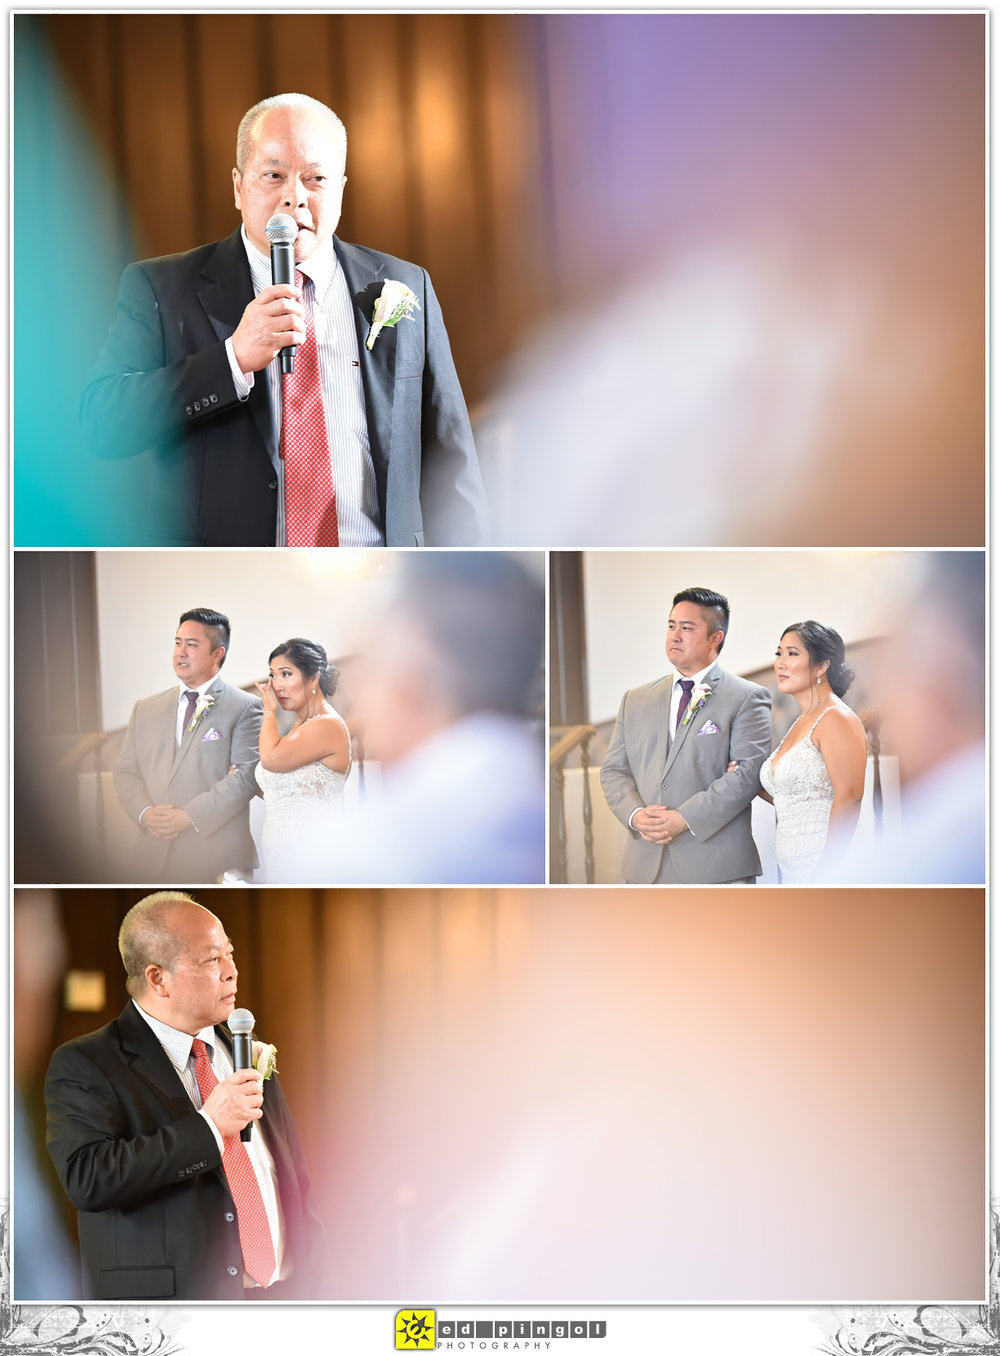 SKYLINE CHURCH OF OAKLAND and Albert De Witt Officer's Club Wedding 15.JPG